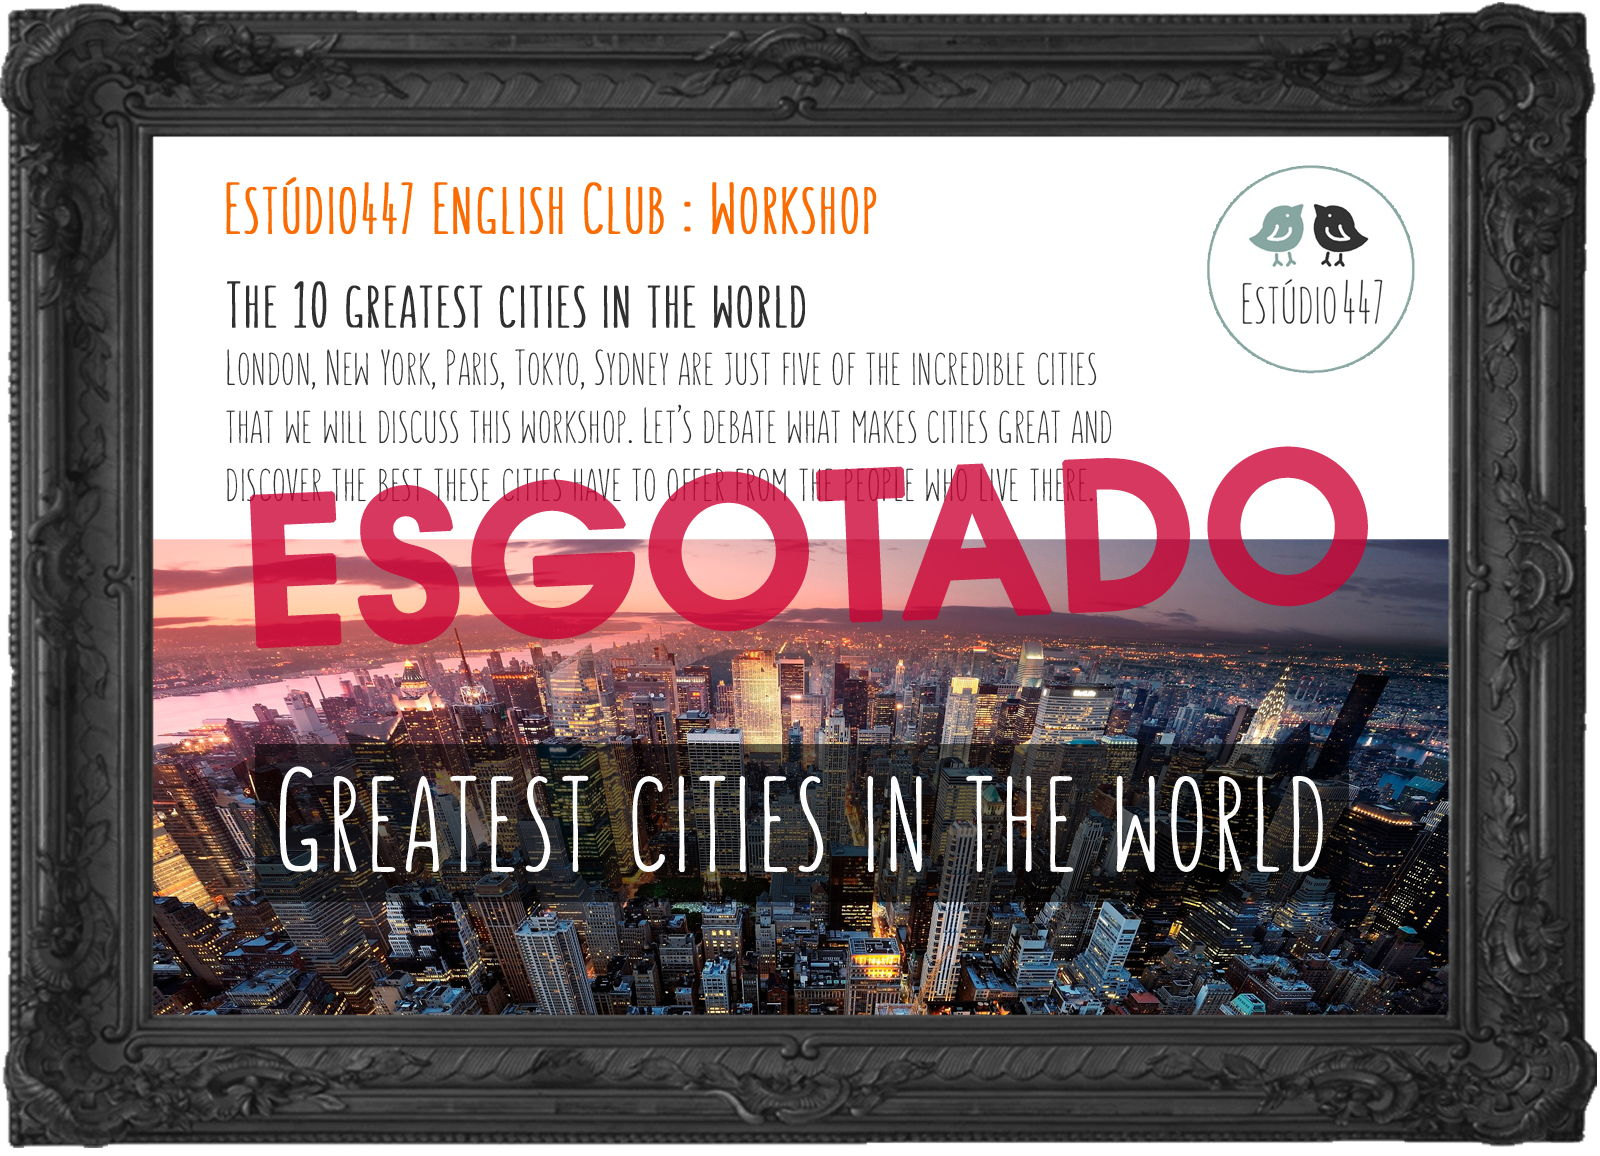 The greatest cities in the world poster - esgotado.jpg